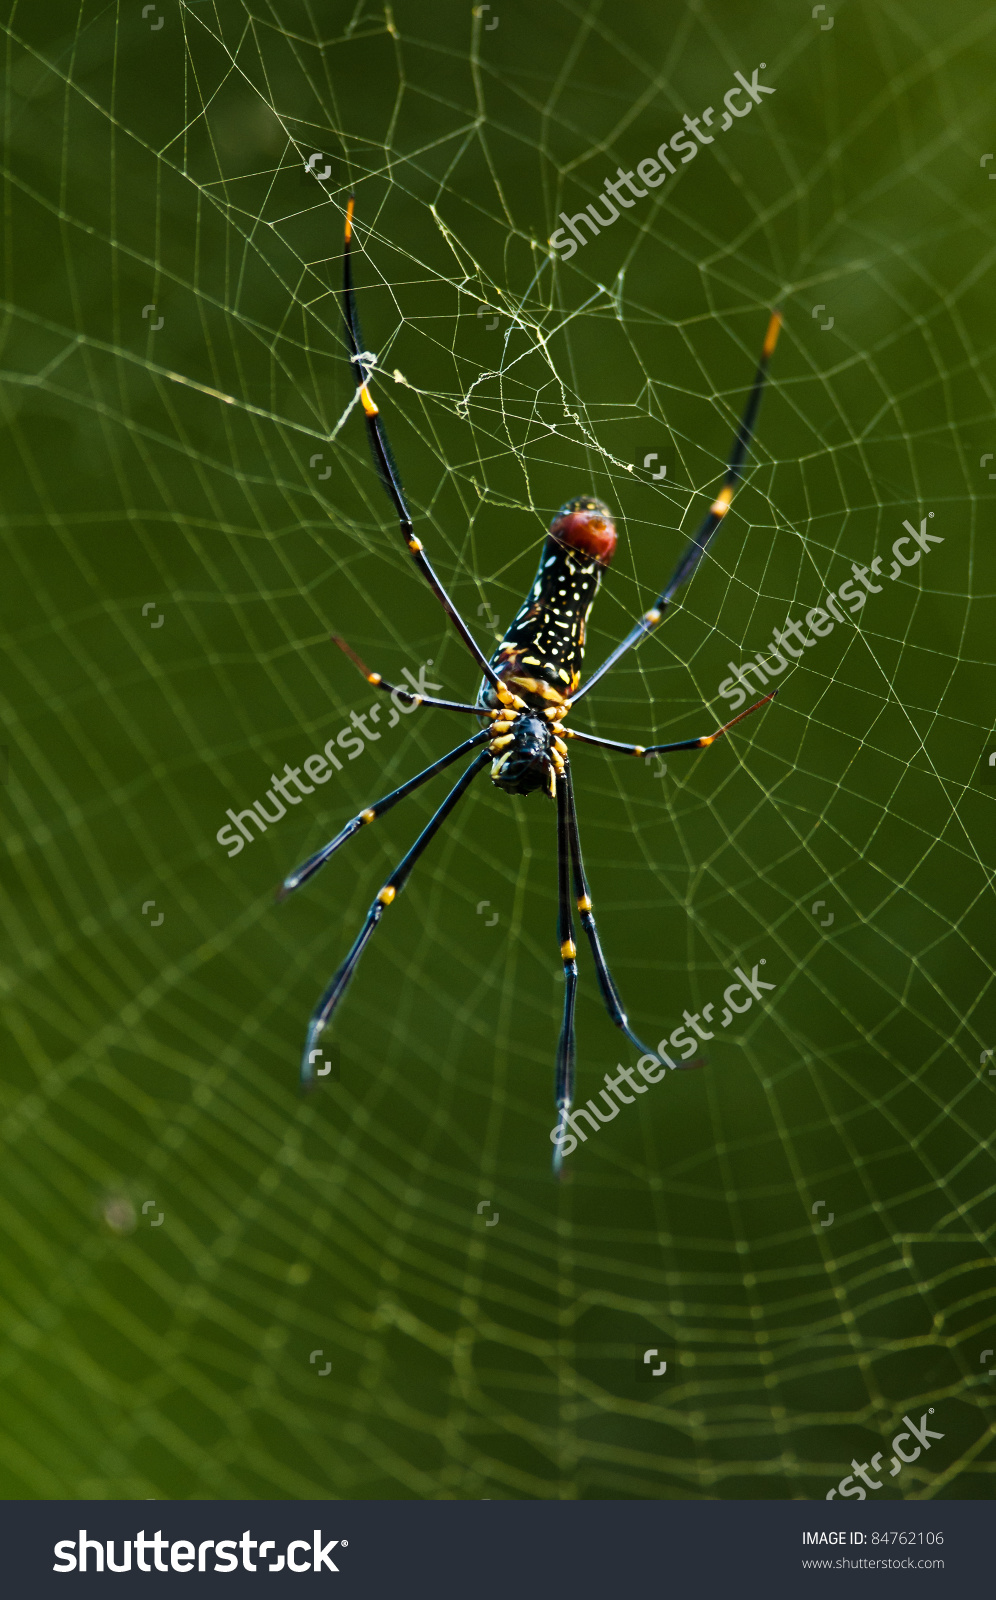 Silk band spider clipart #4